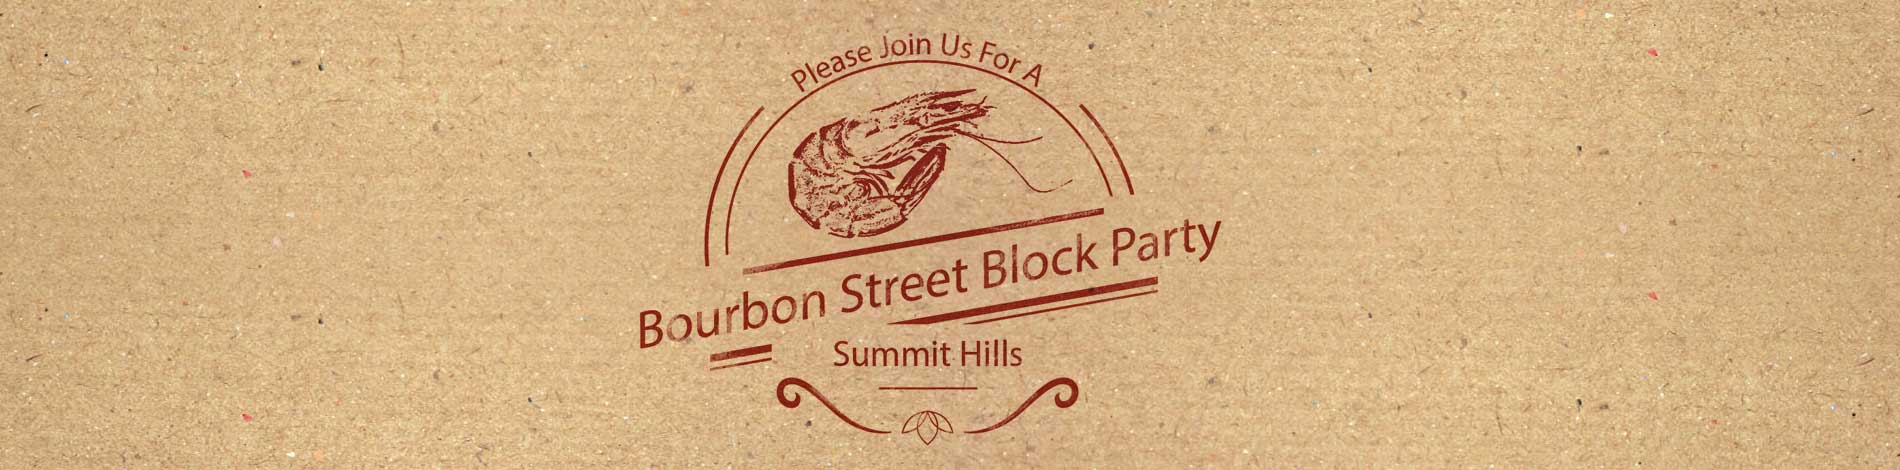 Summit Hills Retirement Community Block Party